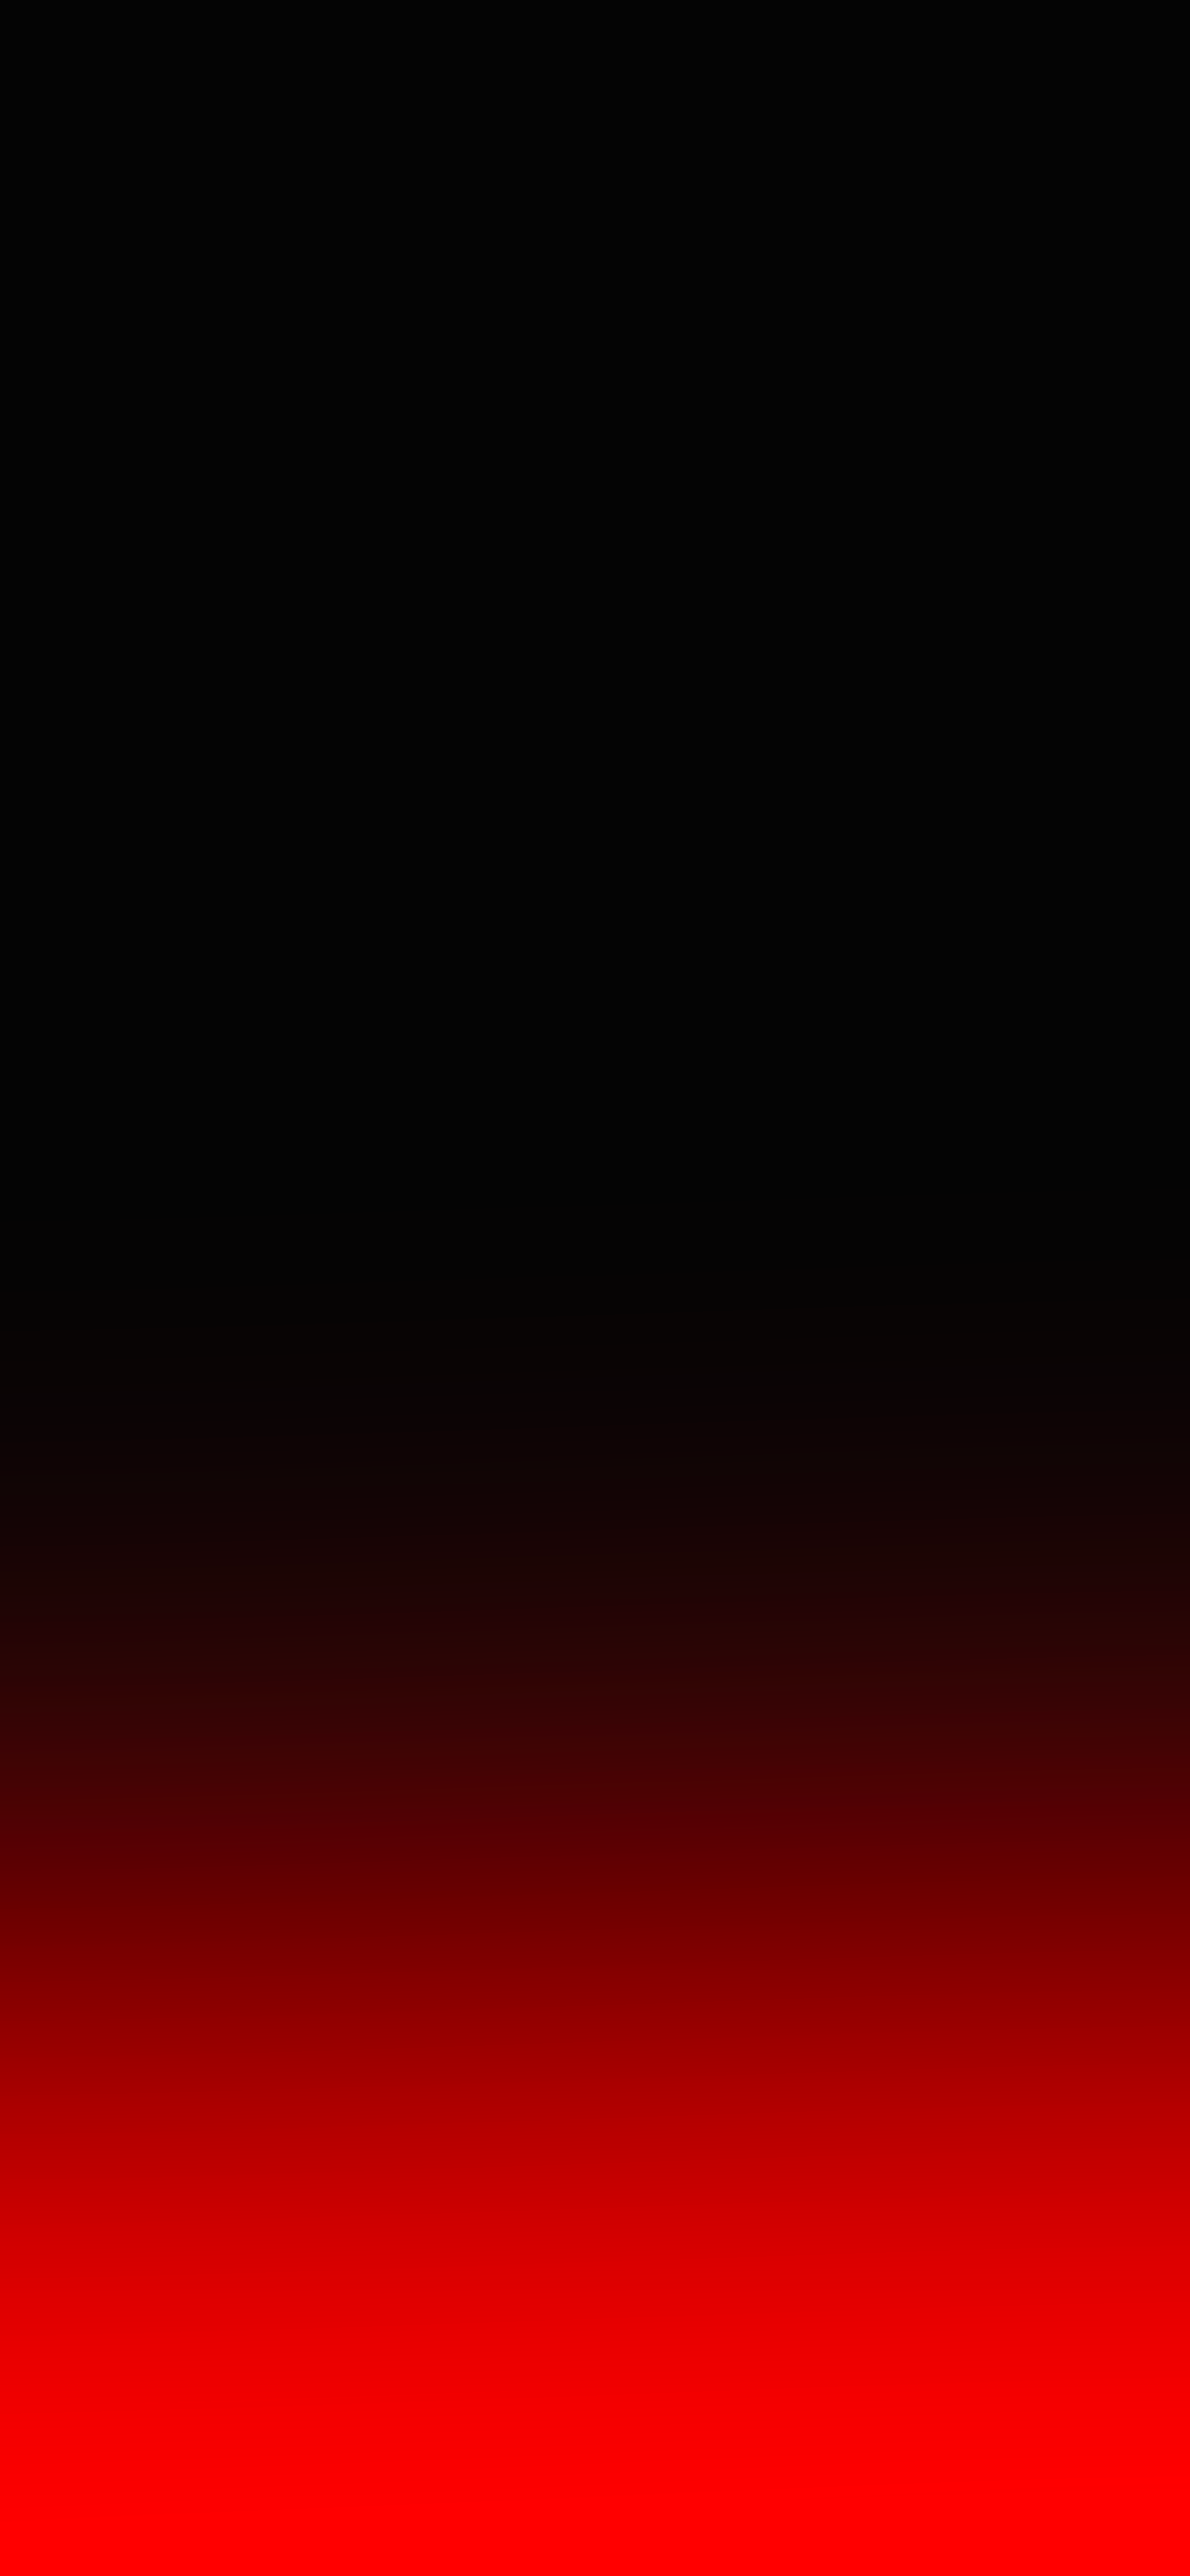 iPhone wallpaper gradient colors red Gradient colors